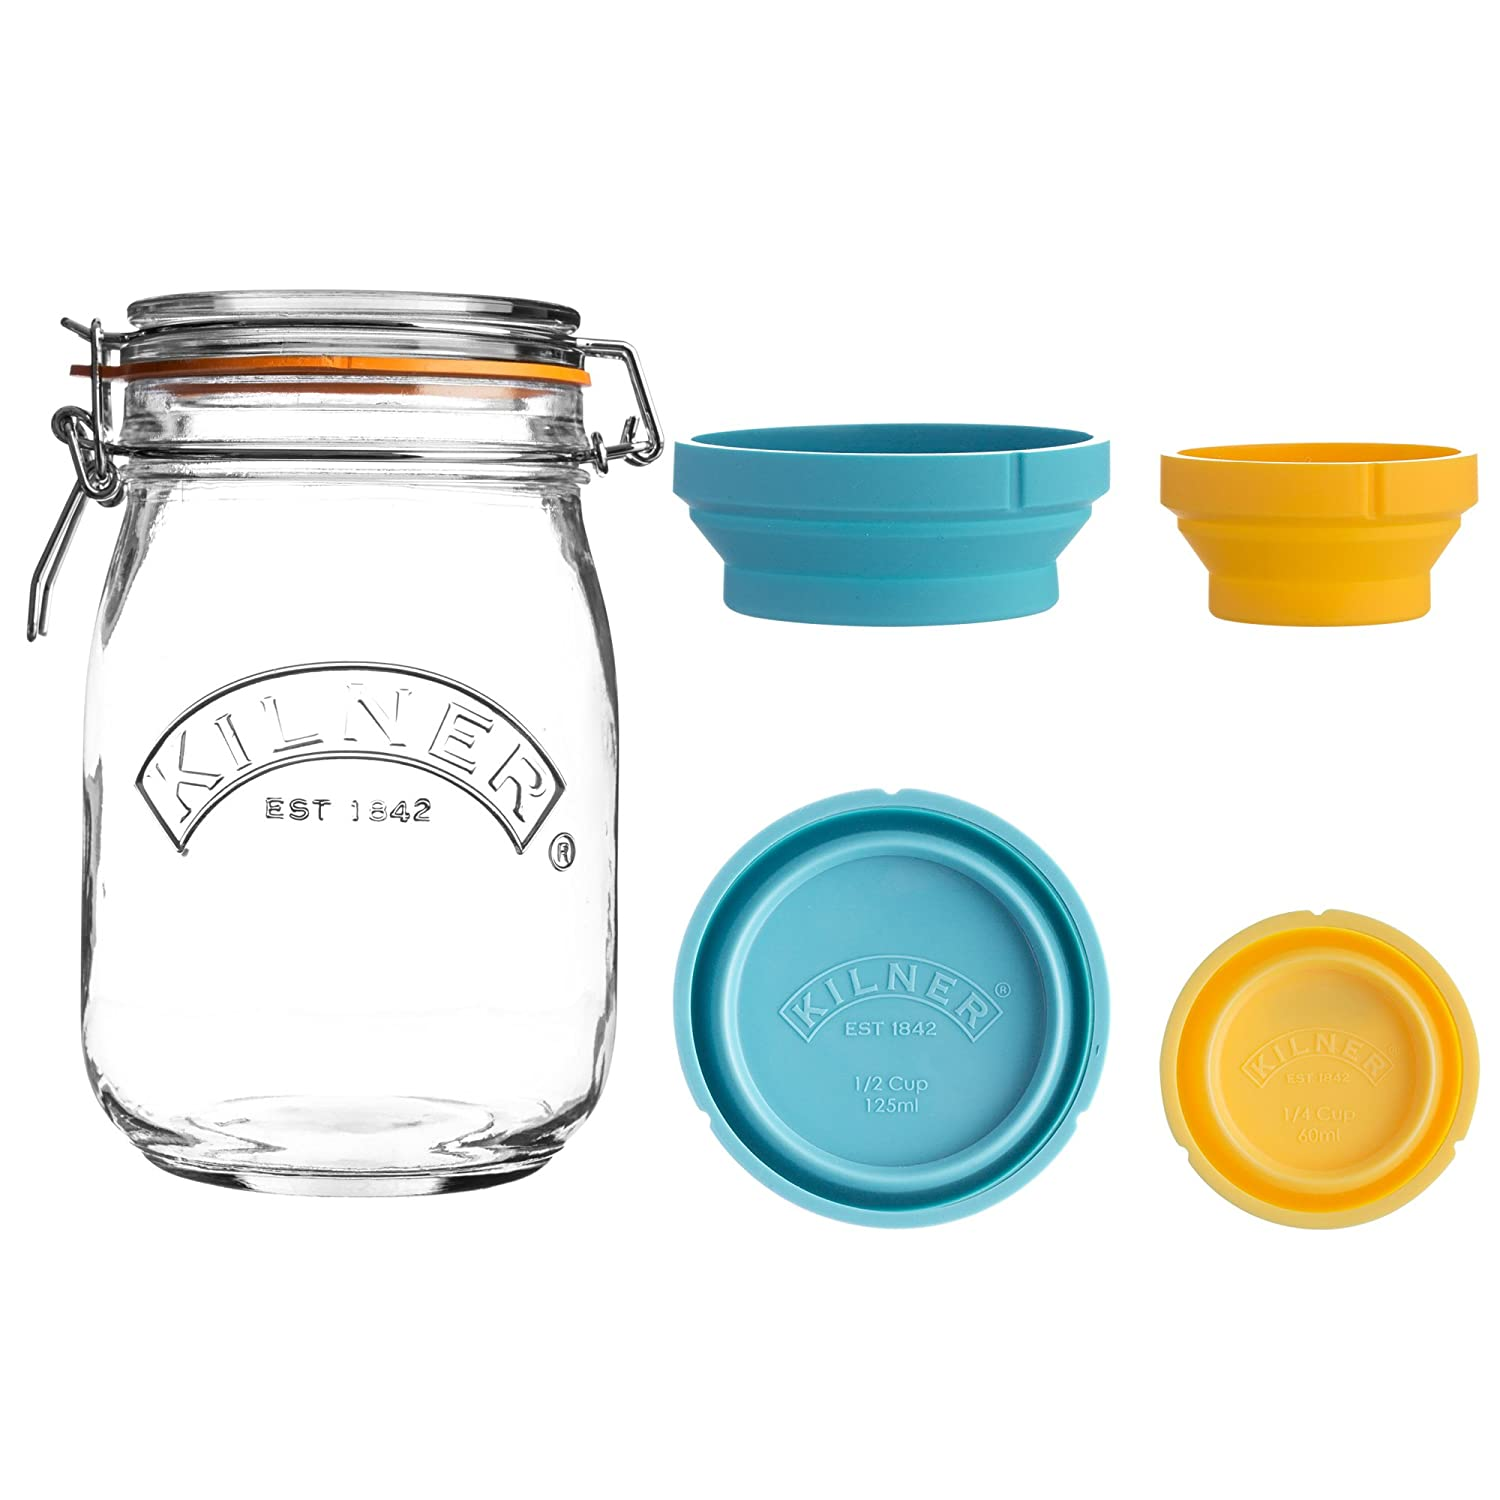 15 Available 1kg Kilner Style Clip Top Glass Jar Air Tight Preserving Storage